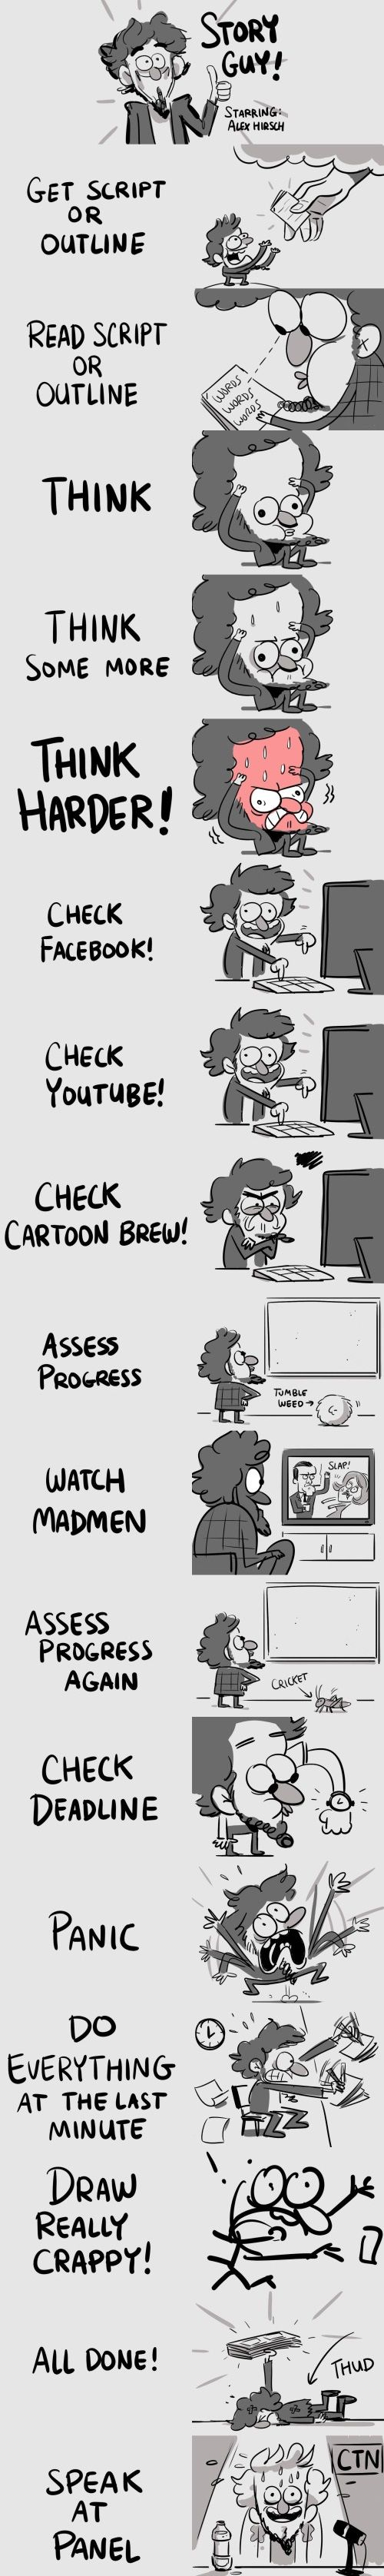 SOMEONE FINALLY PUT IT ALL TOGETHER, Gravity Falls